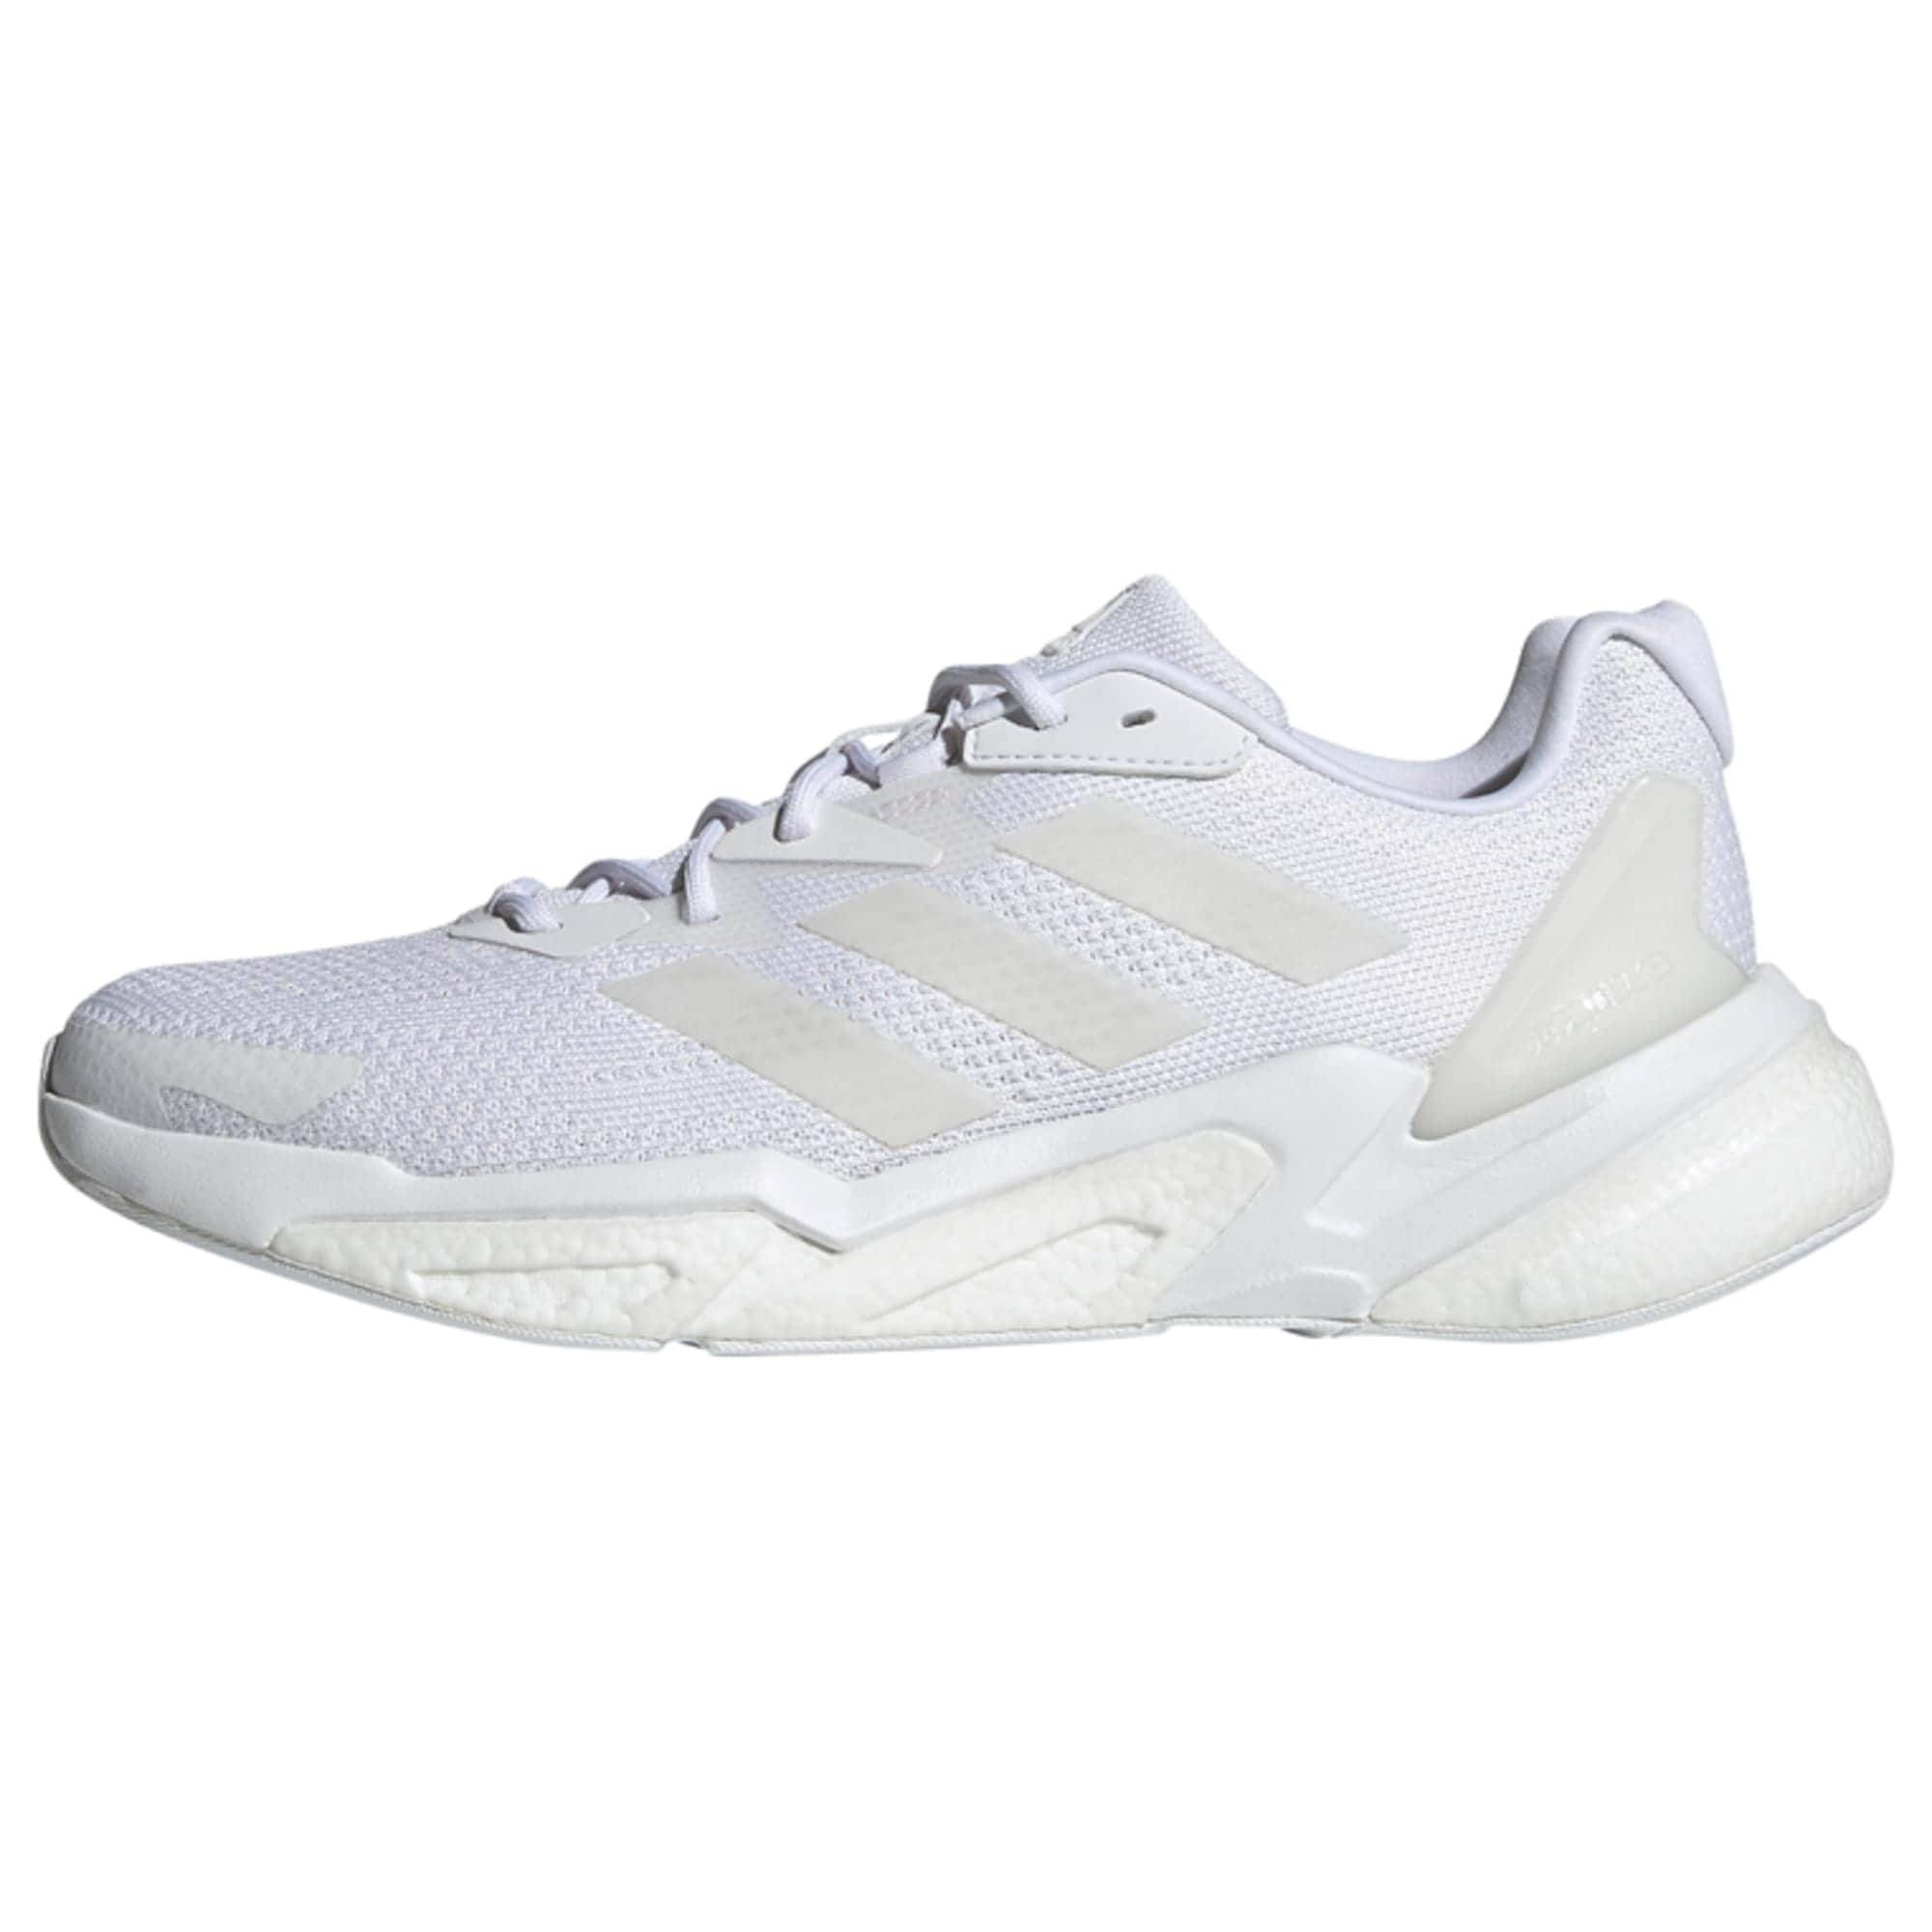 ADIDAS PERFORMANCE Chaussure de course  - Blanc - Taille: 11.5 - male